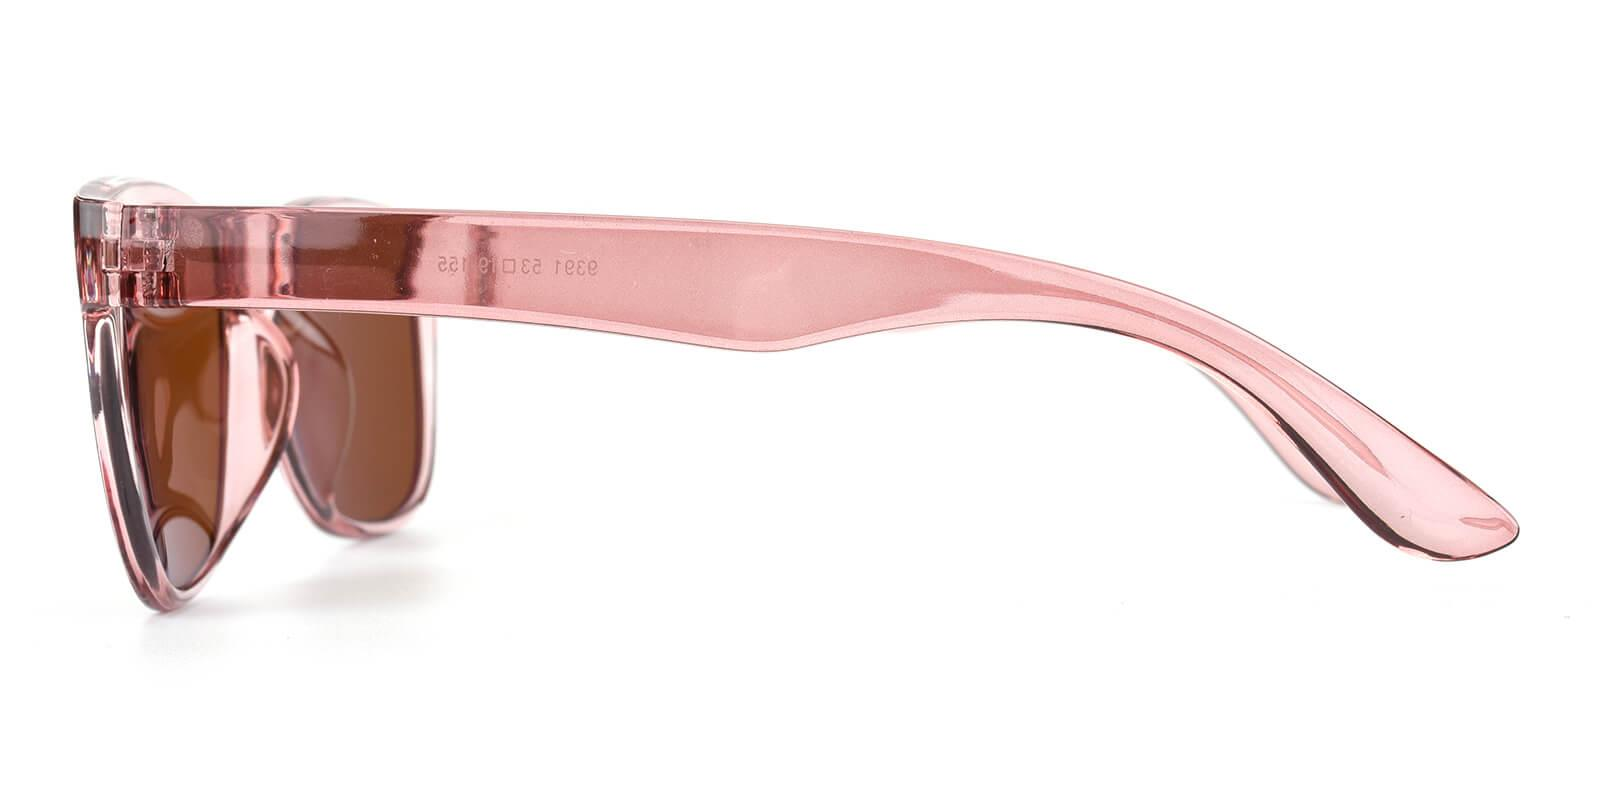 Tracly-Pink-Square / Cat-TR-Sunglasses-detail